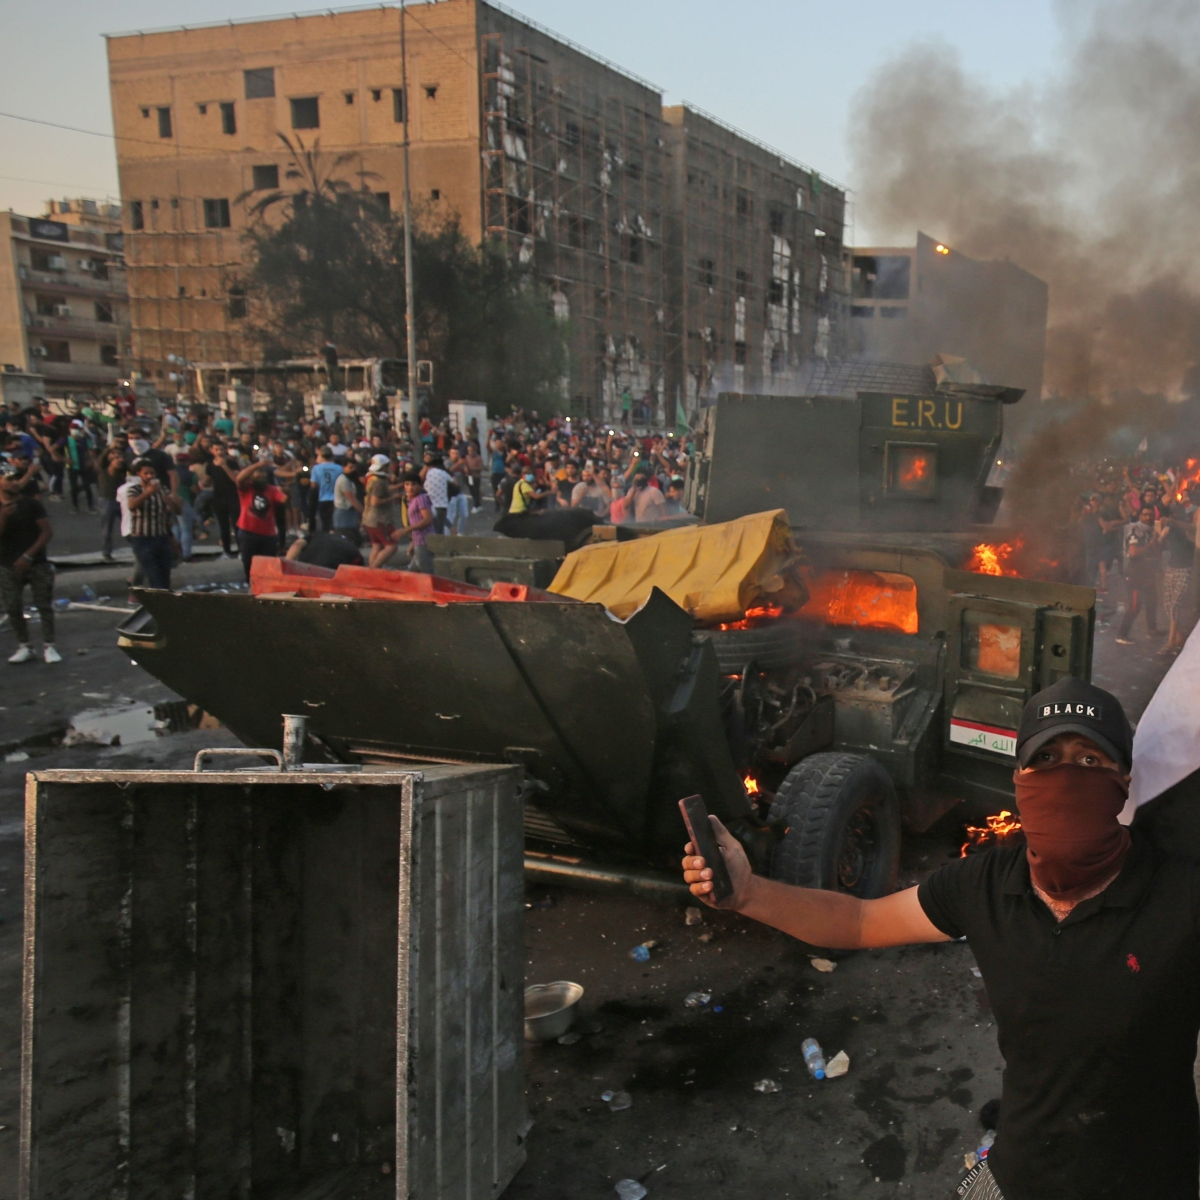 Death toll increases to 93 with 4,000 injured in Iraq protests